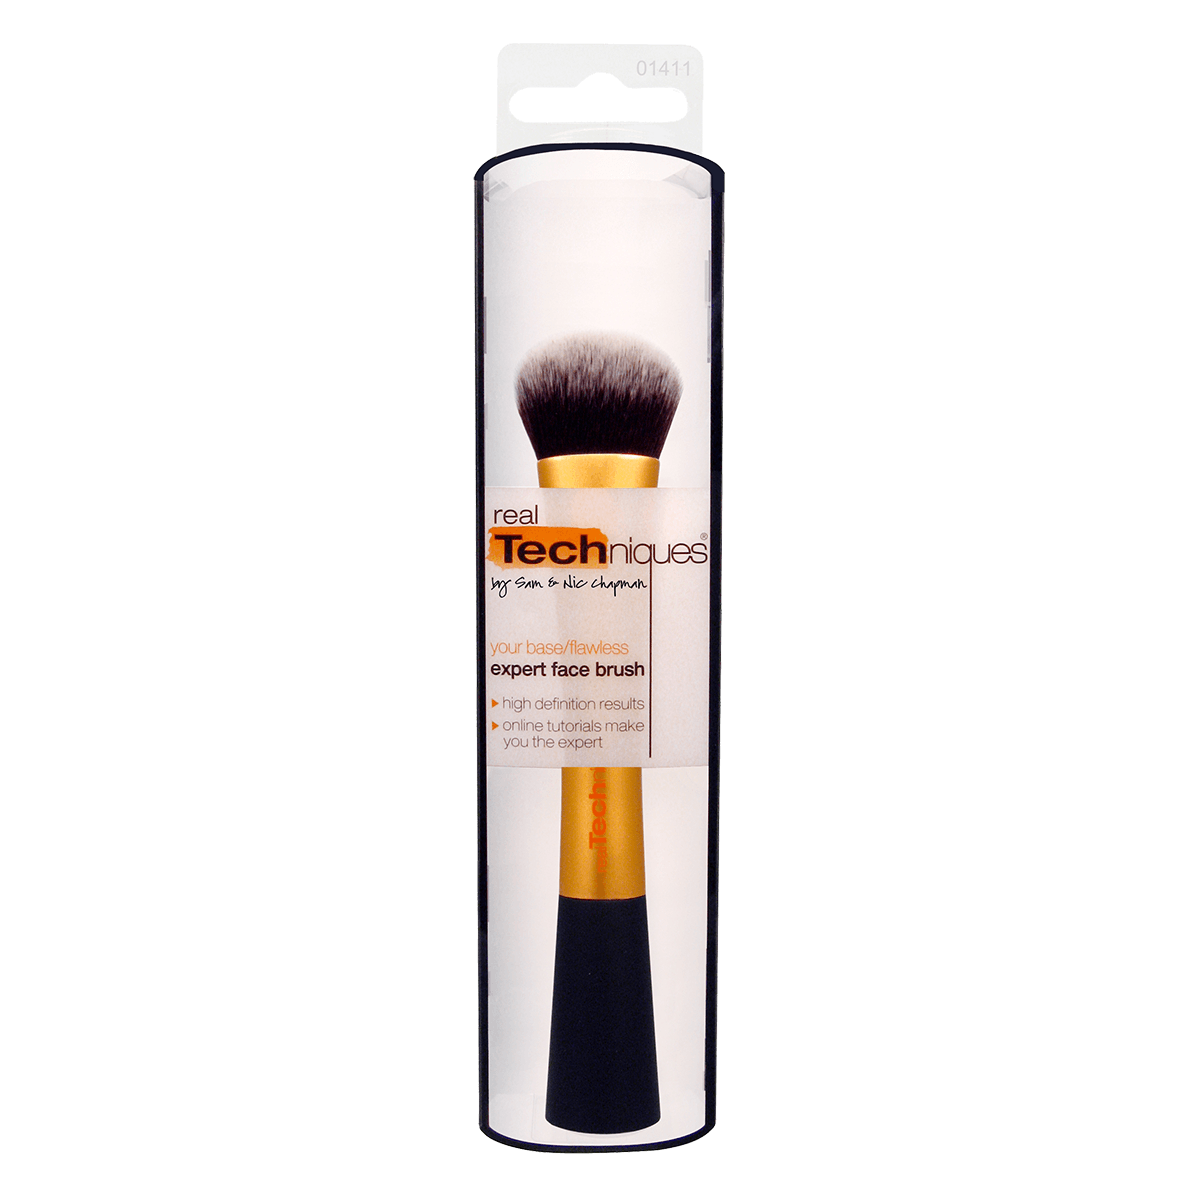 Real Techniques Expert Face Brush Robert Fiance Makeup Academy